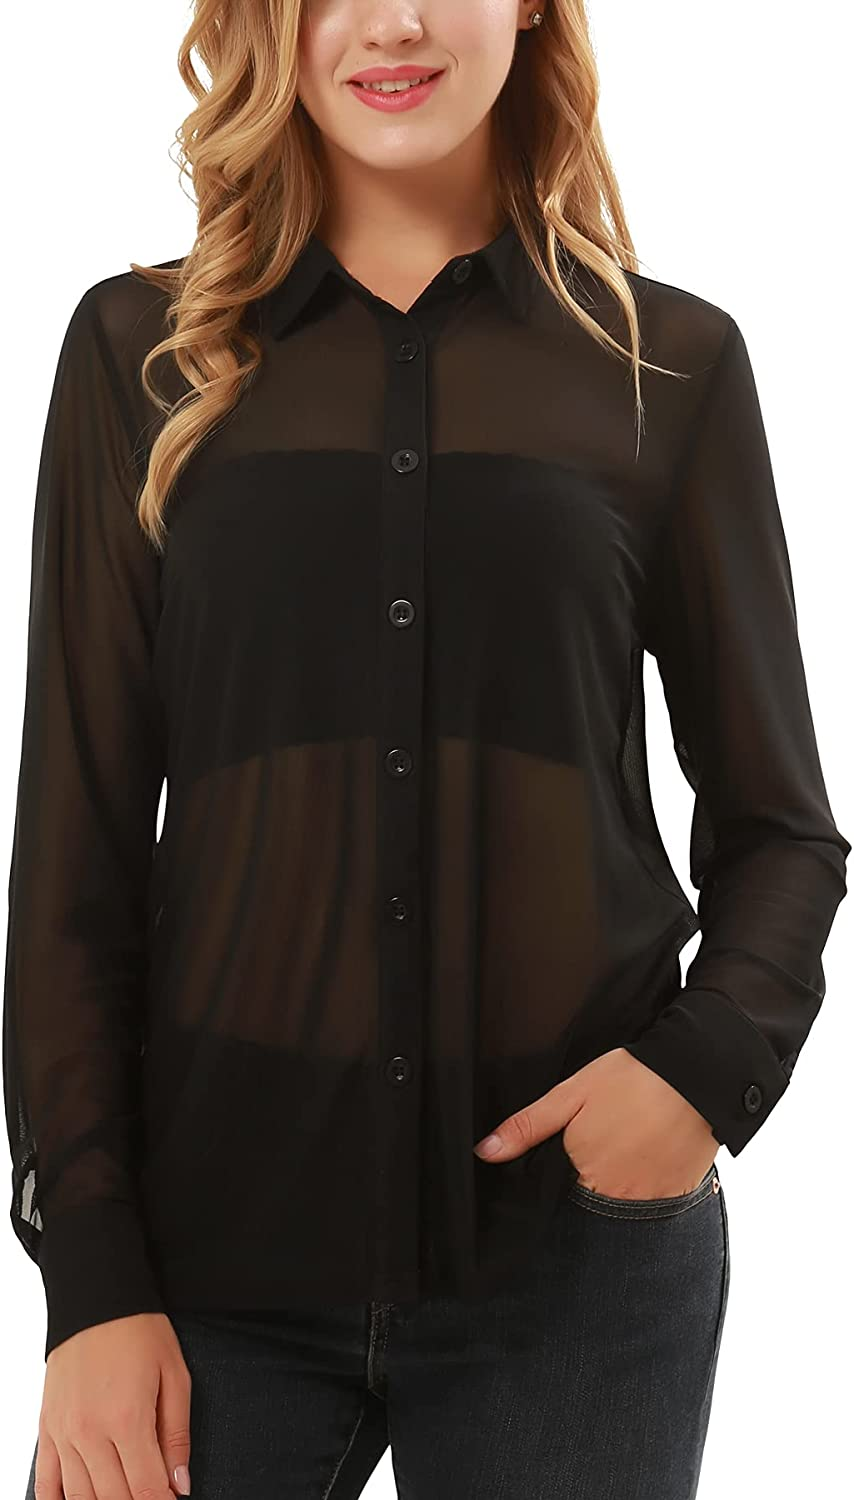 BAISHENGGT Womens Sexy See Through Long Sleeve Button Down Mesh Tops Blouses